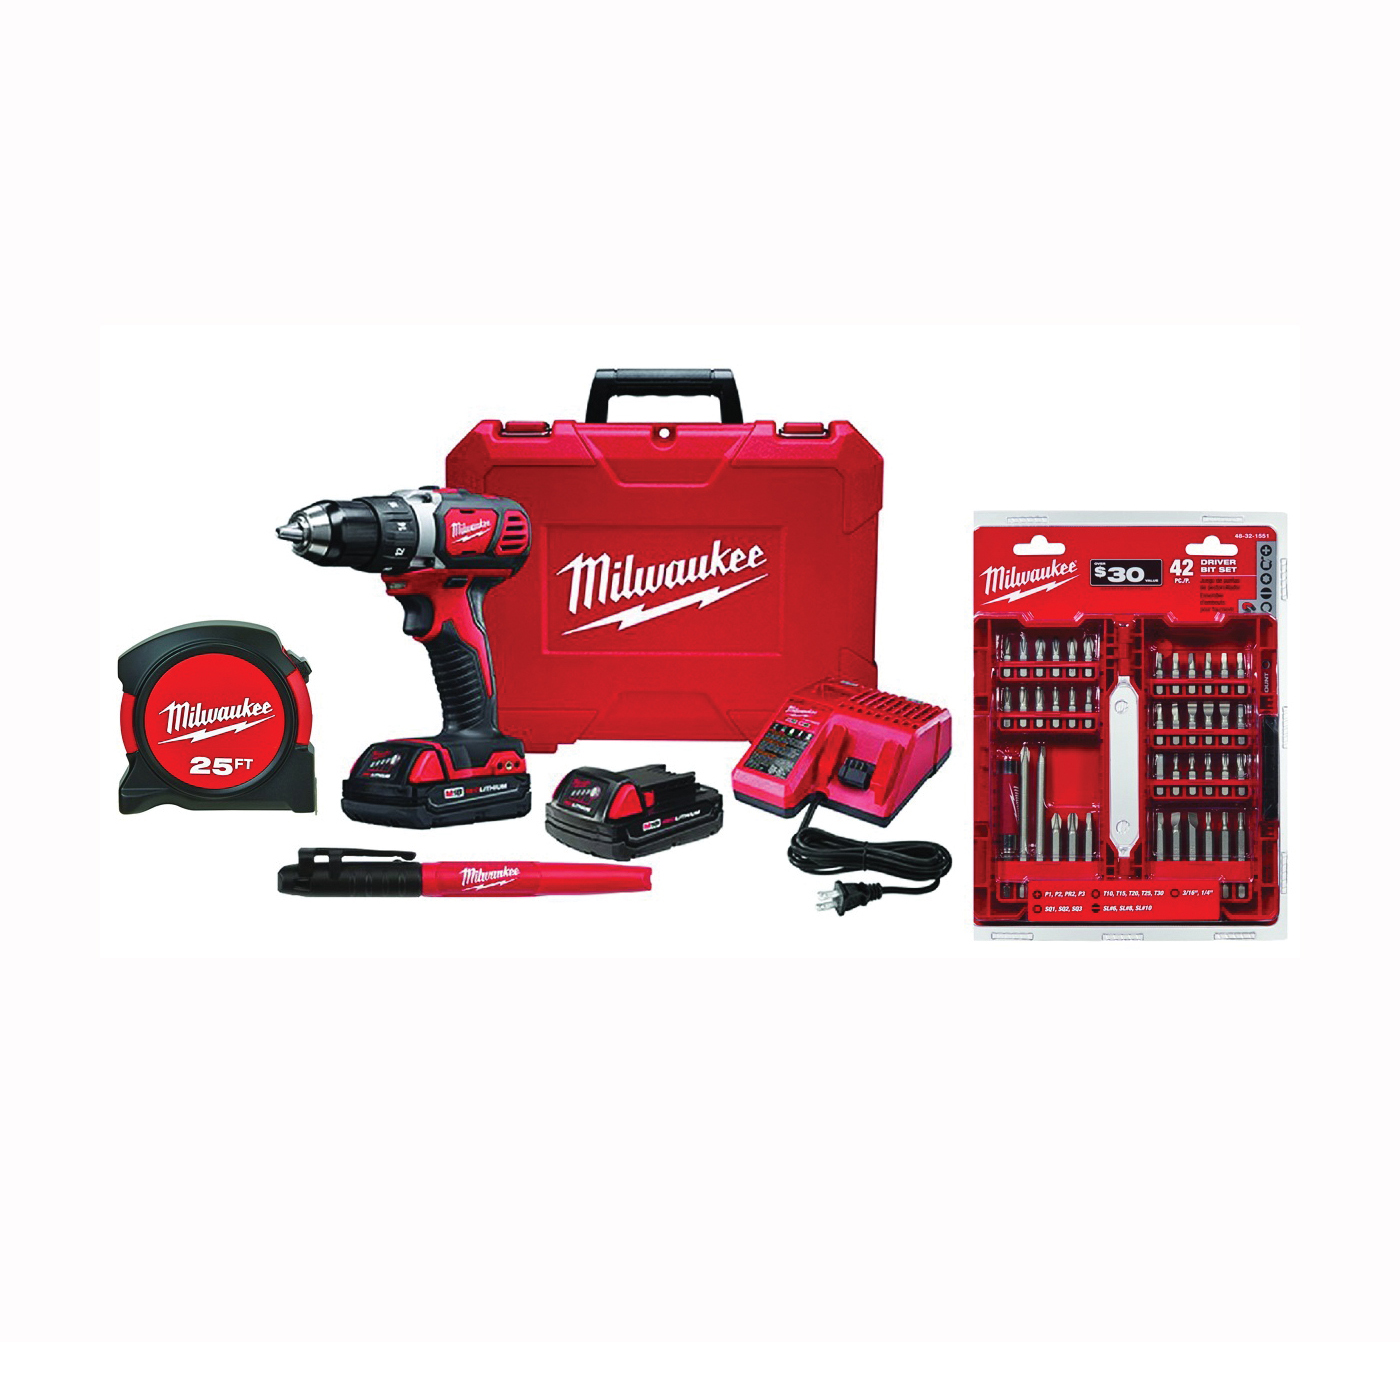 Picture of Milwaukee 2606-22CTP Drill/Driver Kit, Kit, 18 V Battery, 1.5 Ah, 1/2 in Chuck, Ratcheting, Single Sleeve Chuck